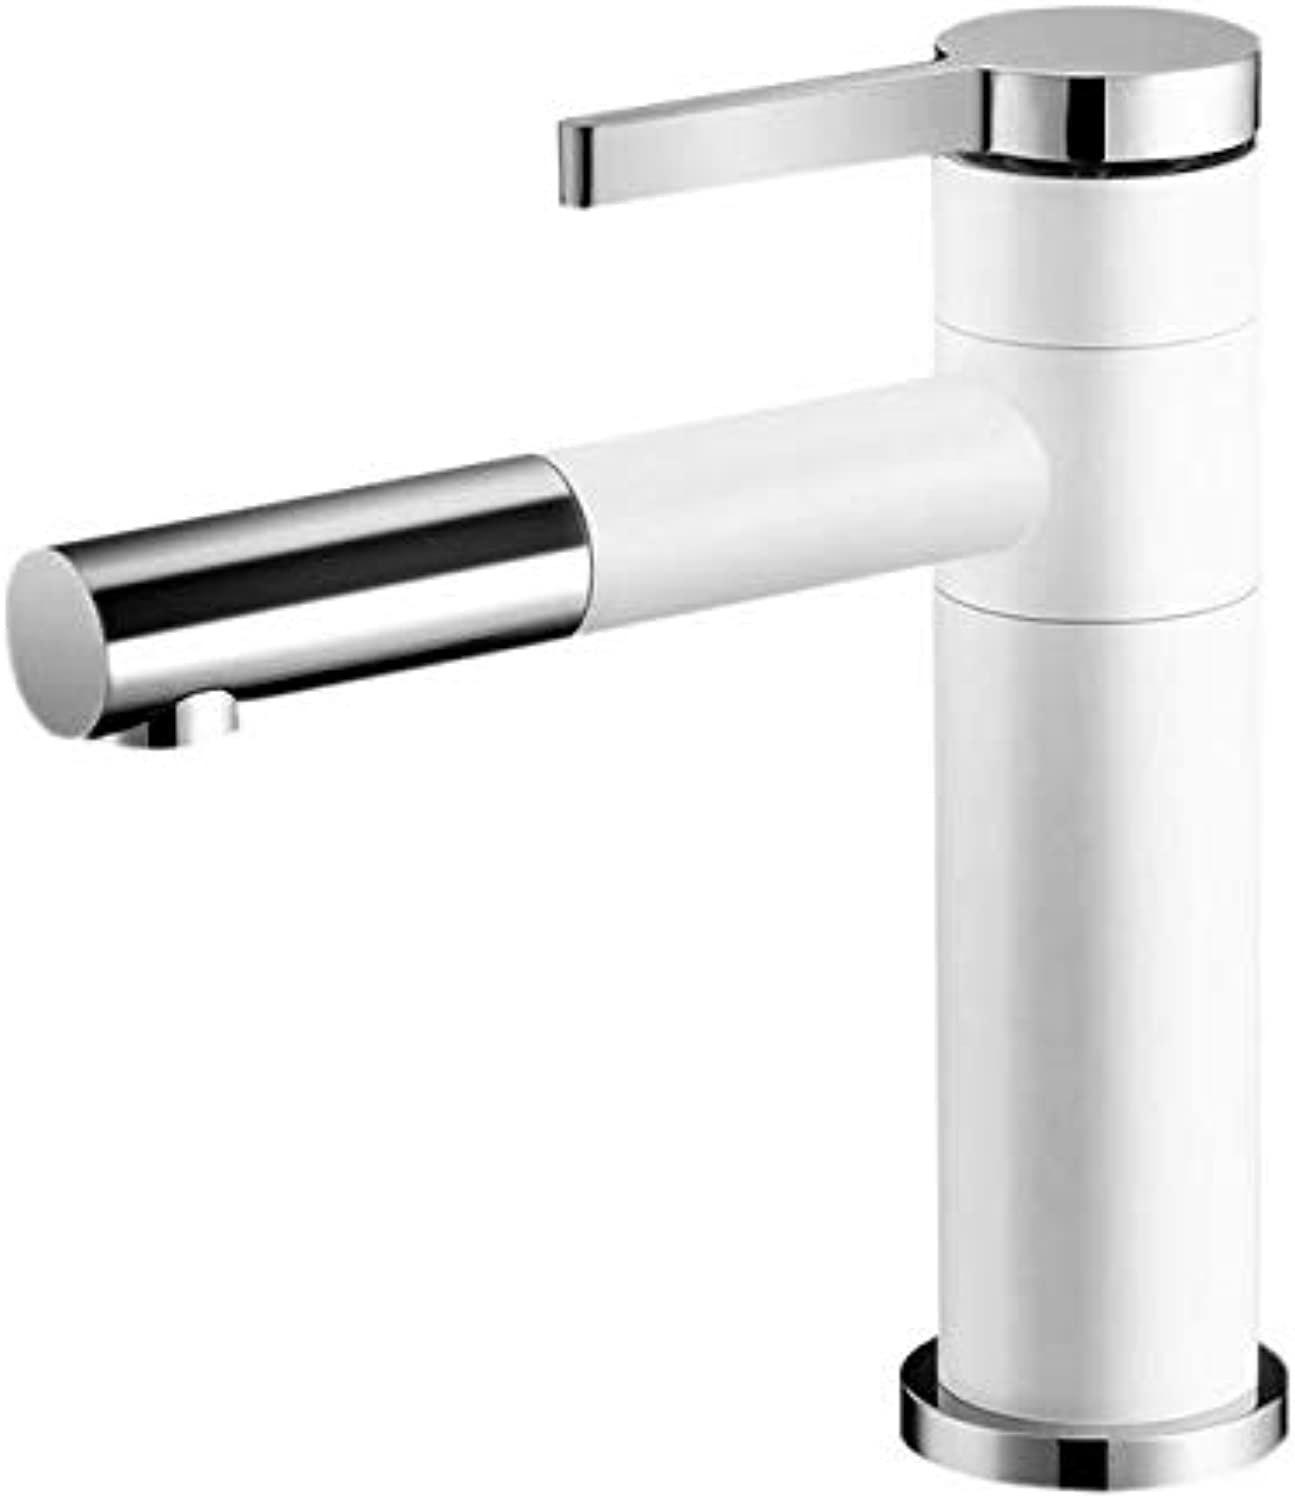 Pull-Type Basin Faucet hot and Cold wash Basin Black and White Household Bathroom Telescopic wash Basin Basin Faucet